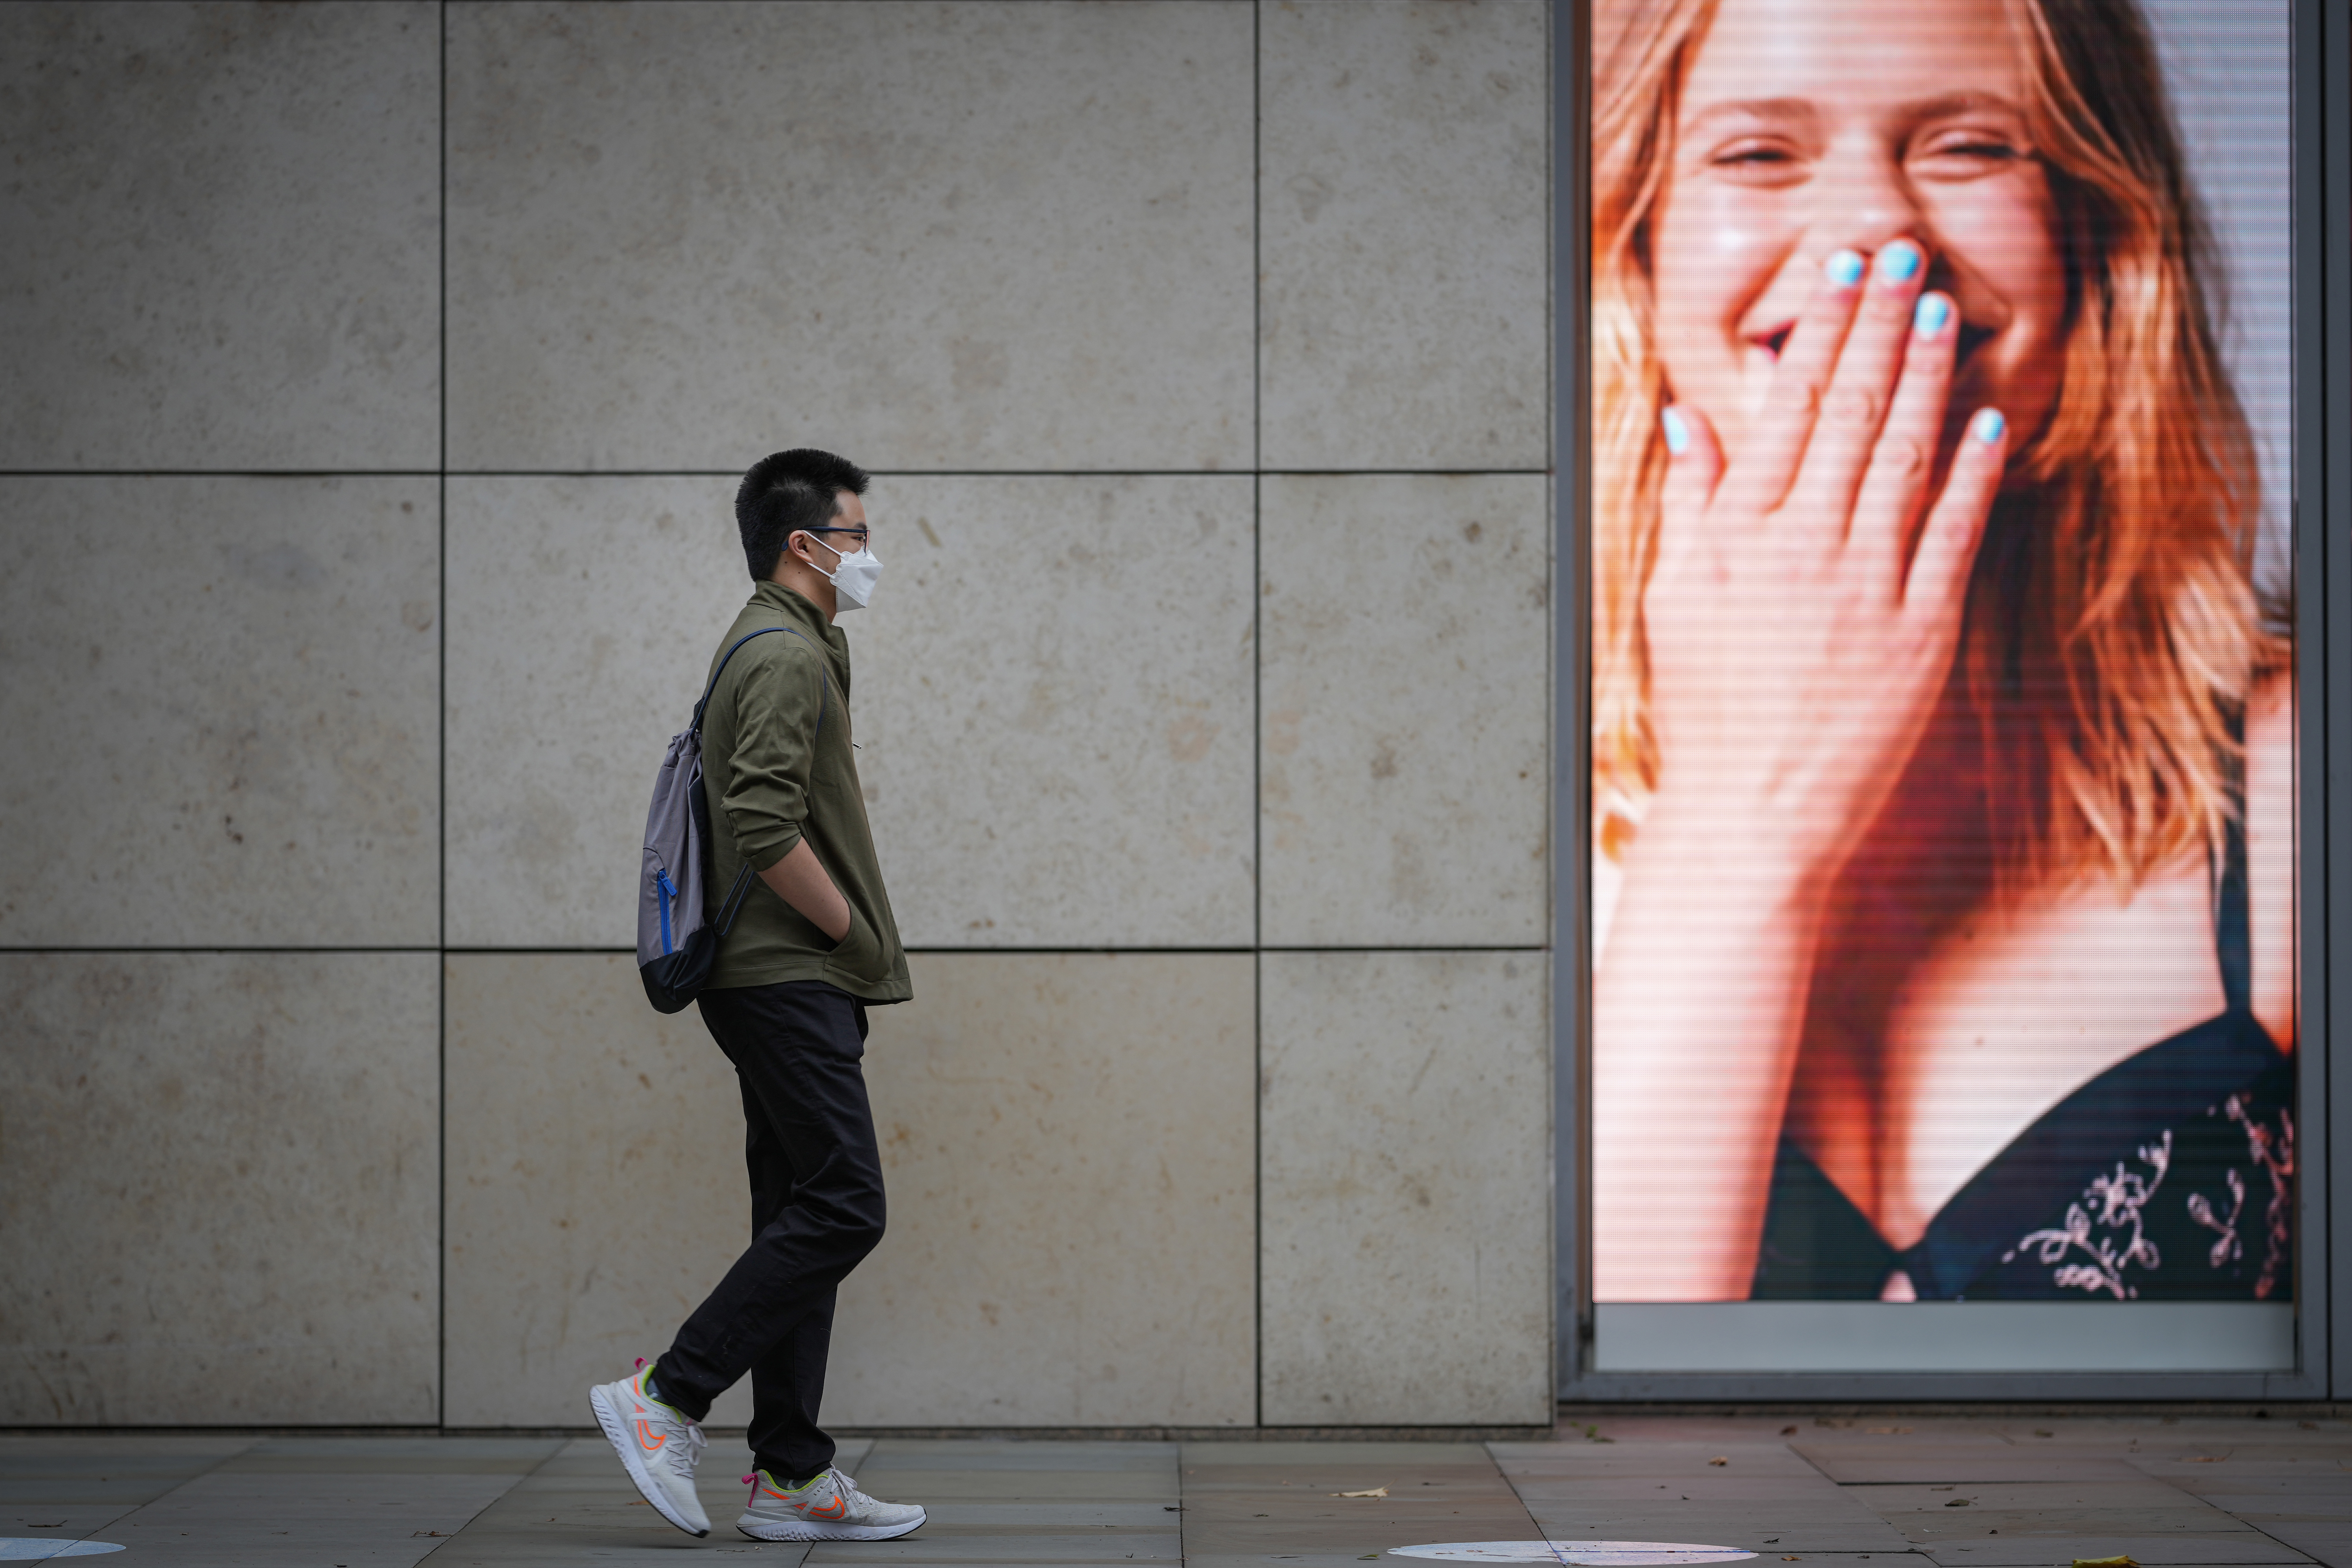 <p>MANCHESTER, ENGLAND - SEPTEMBER 13: A member of the public wears a pandemic face mask ahead of the prime minister announcing the government's Covid-19 winter strategy on September 13, 2021 in Manchester, England. Tomorrow, British Prime Minister Boris Johnson will set out his plan to manage Covid-19 through the winter, including what actions would need to be taken if the NHS hospital system were at risk of being overwhelmed. (Photo by Christopher Furlong/Getty Images)</p>